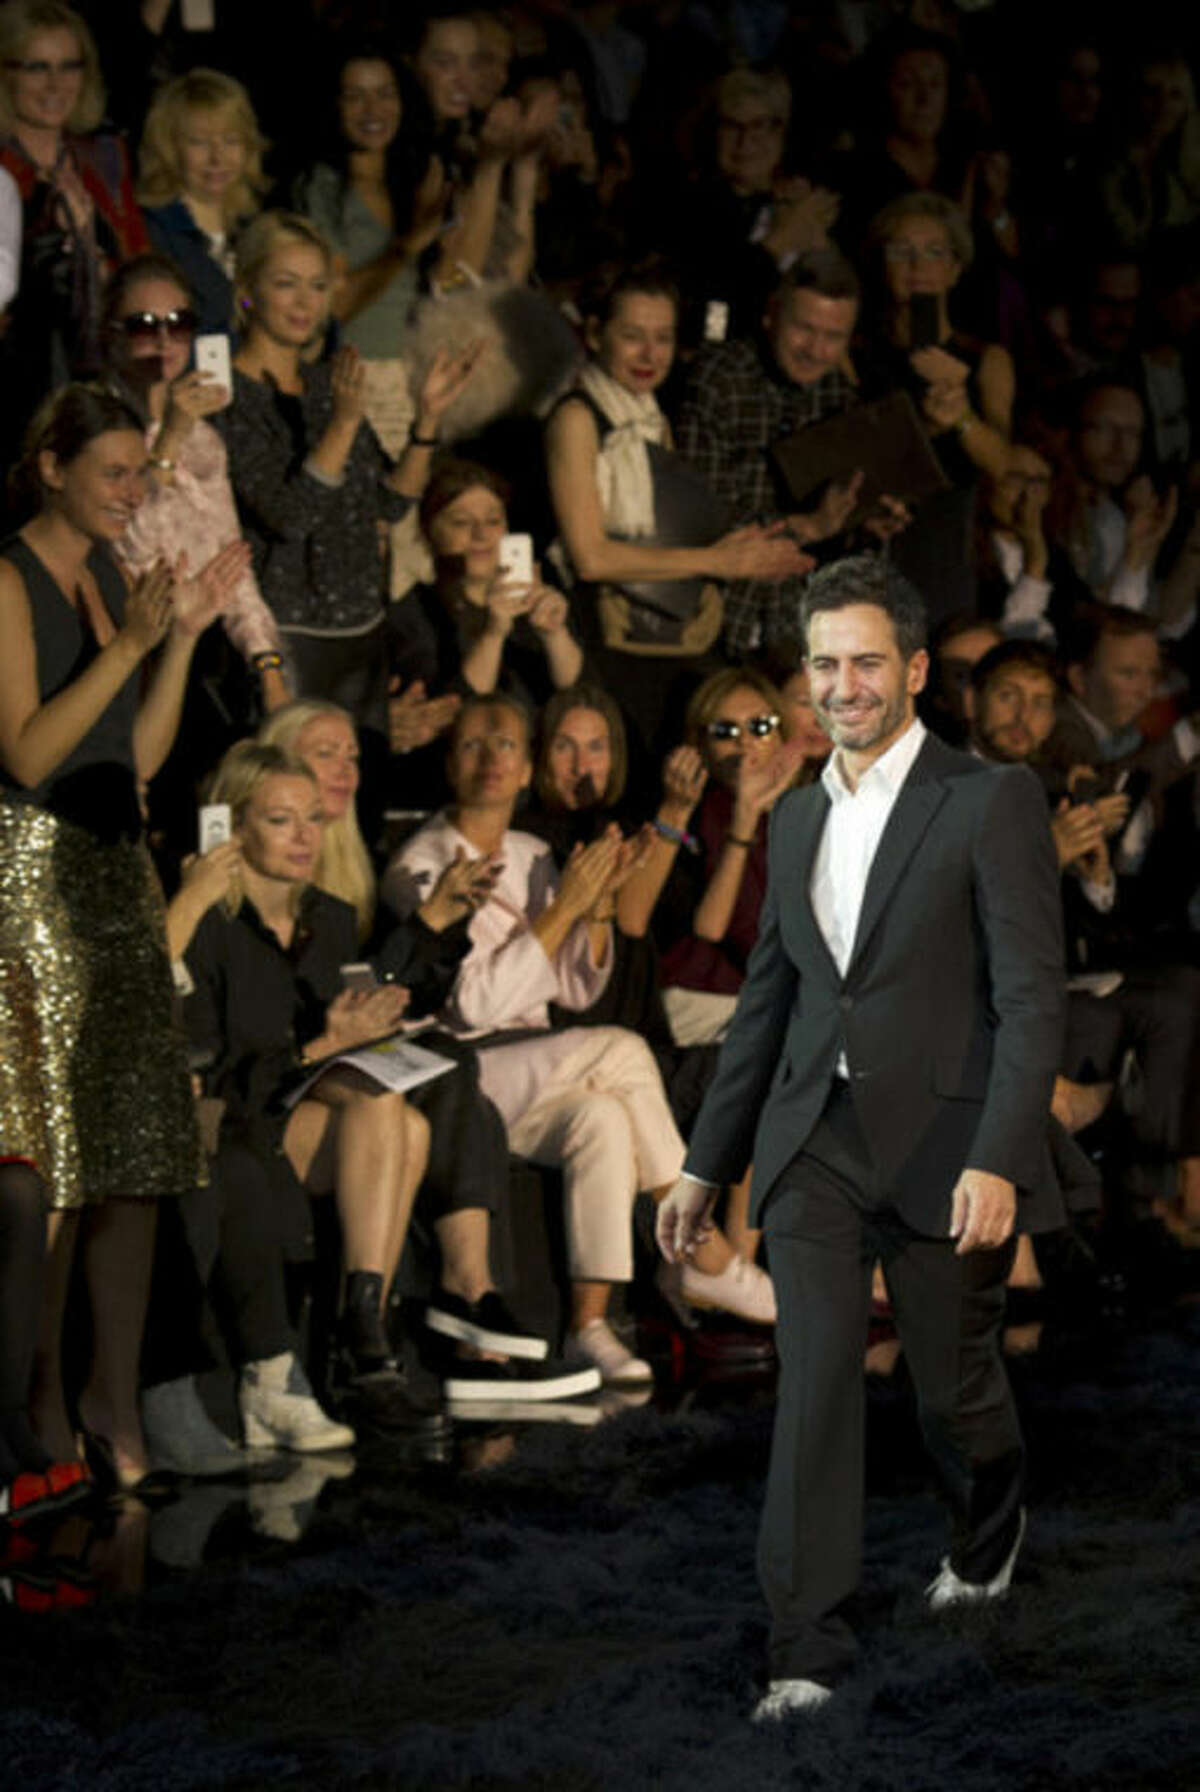 Fashion designer Marc Jacobs acknowledges applause following the presentation of the ready-to-wear Spring/Summer 2014 fashion collection he designed for Vuitton, Wednesday, Oct. 2, 2013 in Paris. (AP Photo/Jacques Brinon)